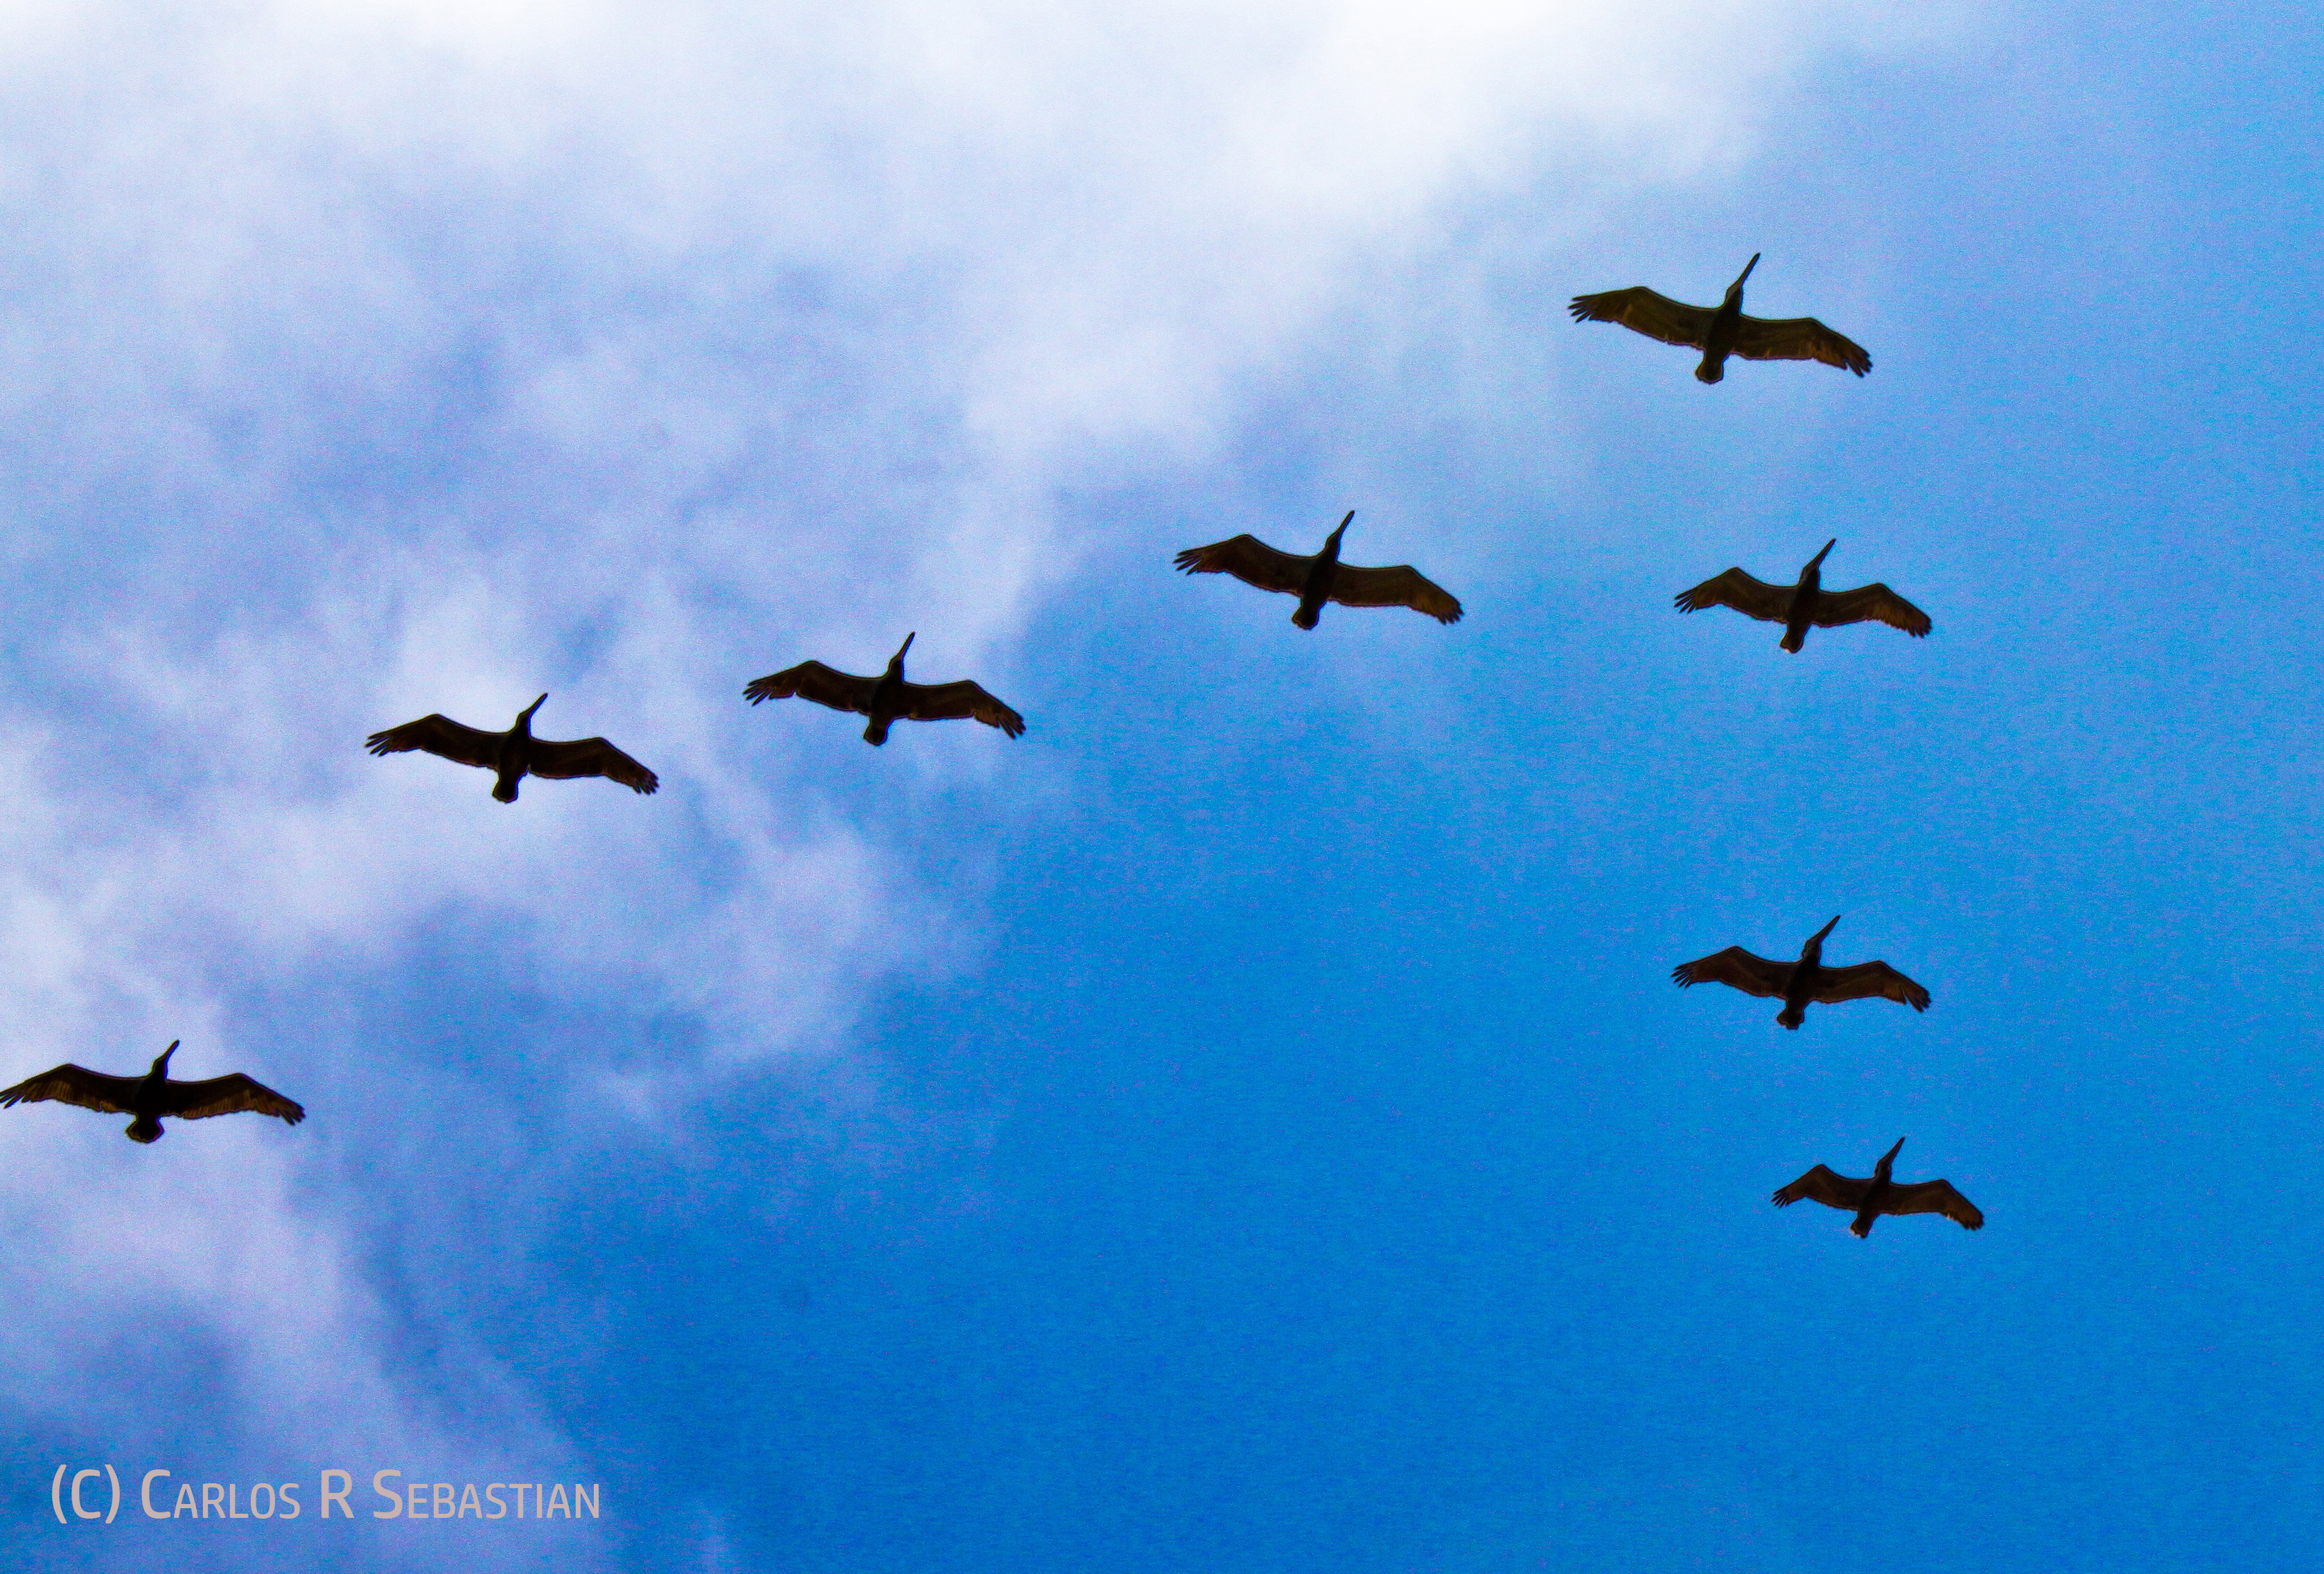 Freeing our souls from negative behaviours and blocked energy is the healthiest route towards happiness - Image: Flying pelicans (copyrighted)